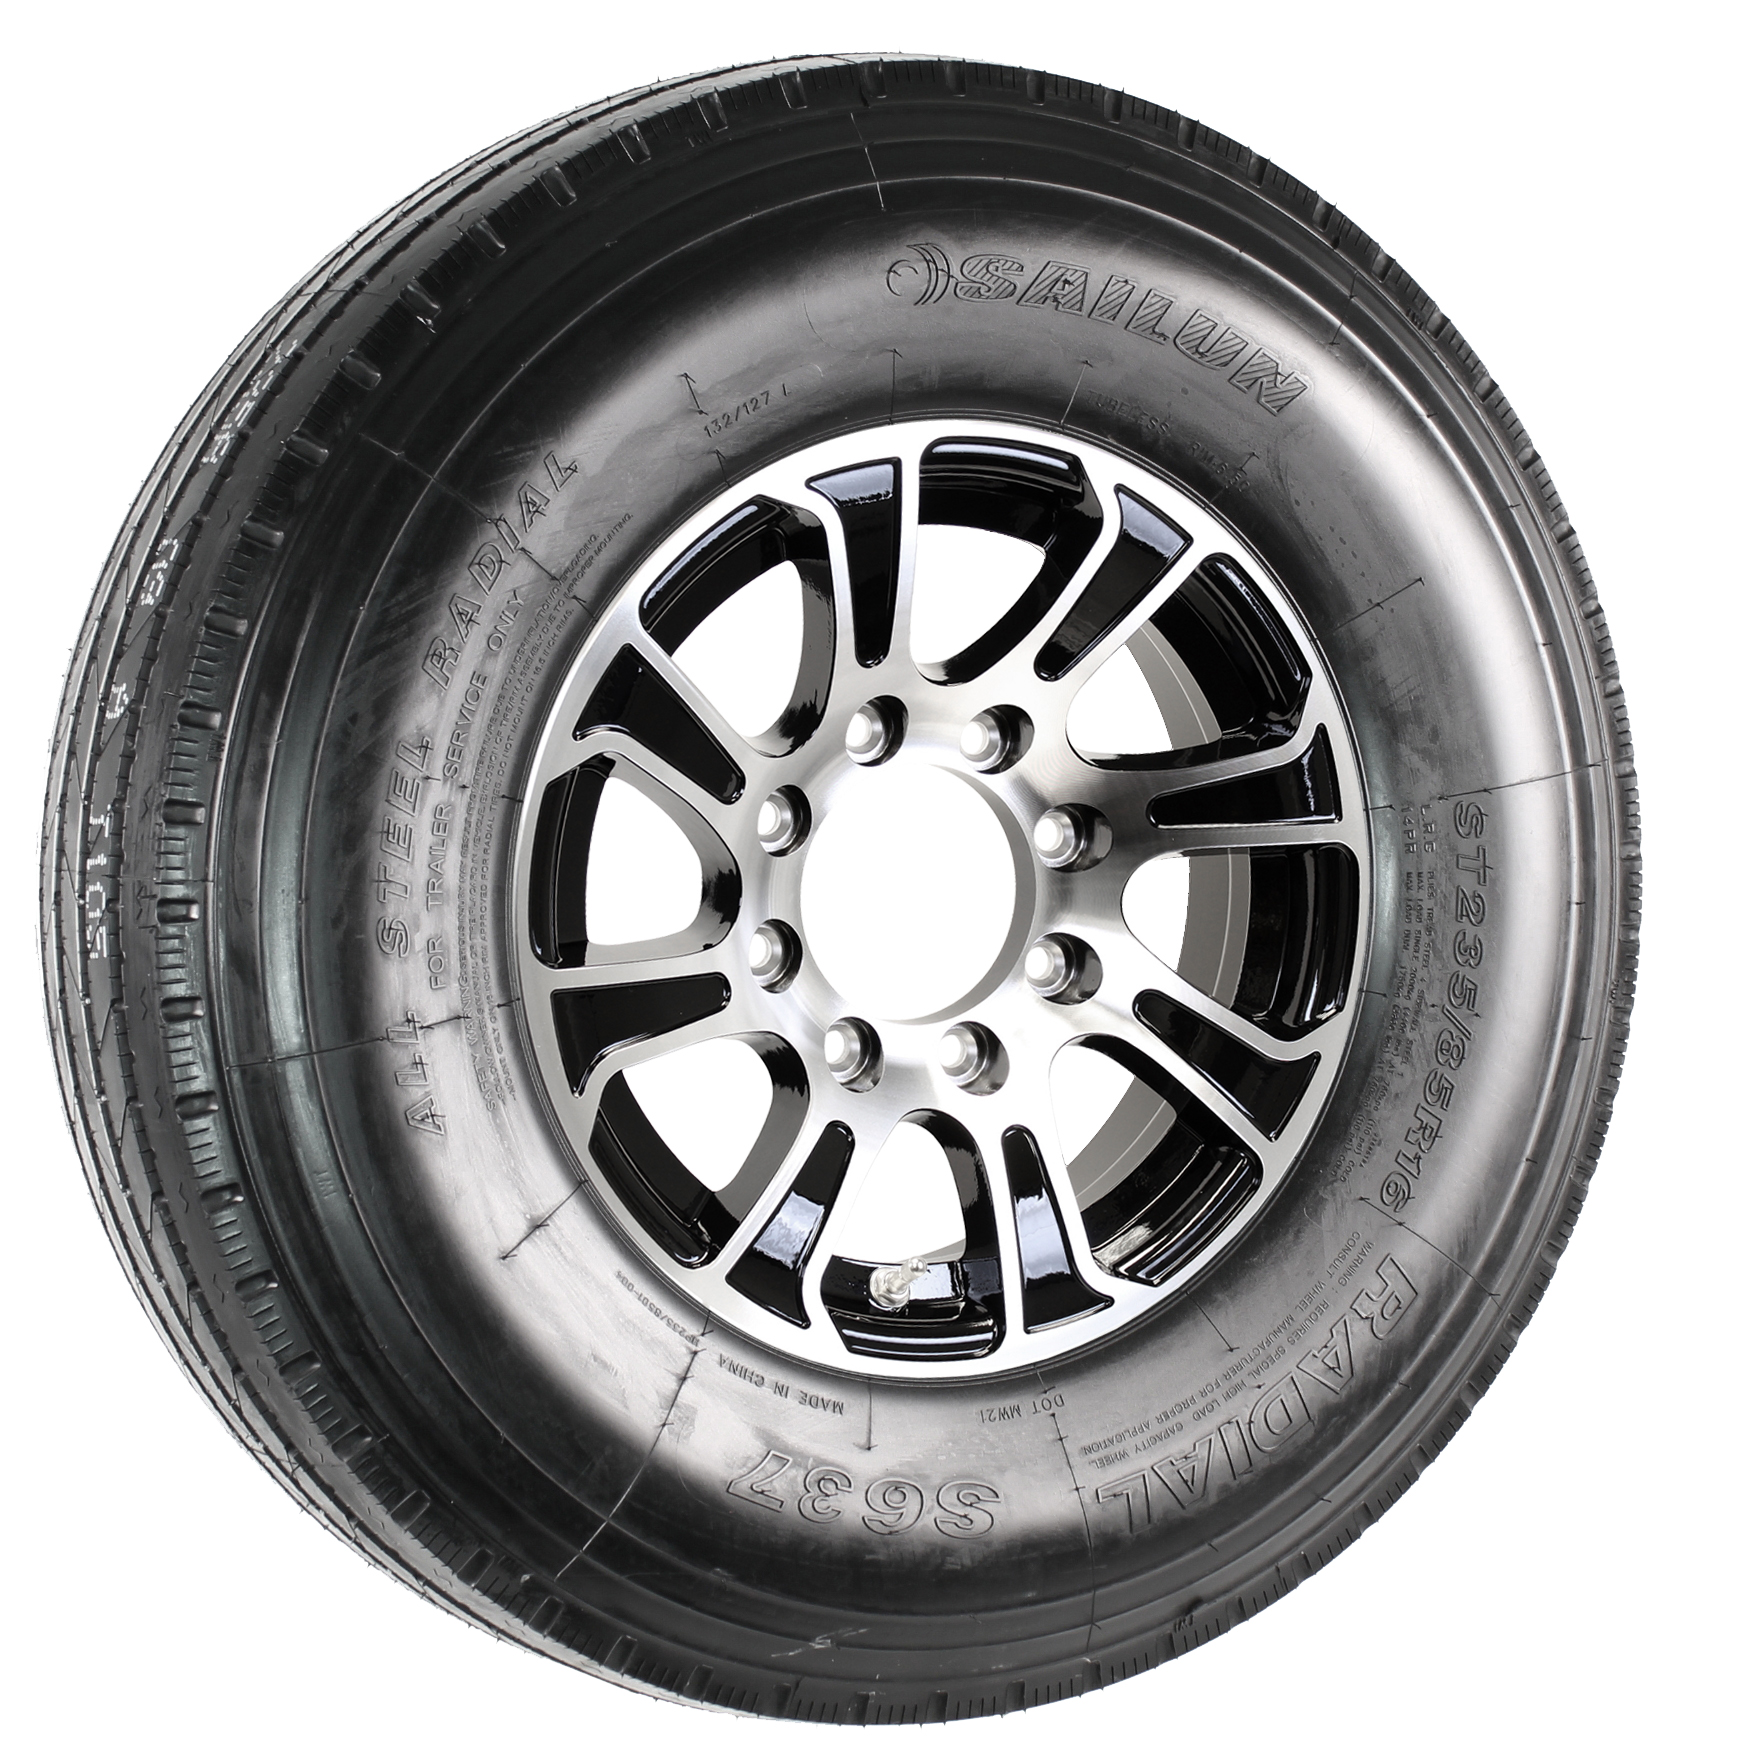 Sailun ST235/85R16G Trailer Tire on a Summit 16x6 8-6.5 Black/Machine Aluminum Wheel Assembly Image